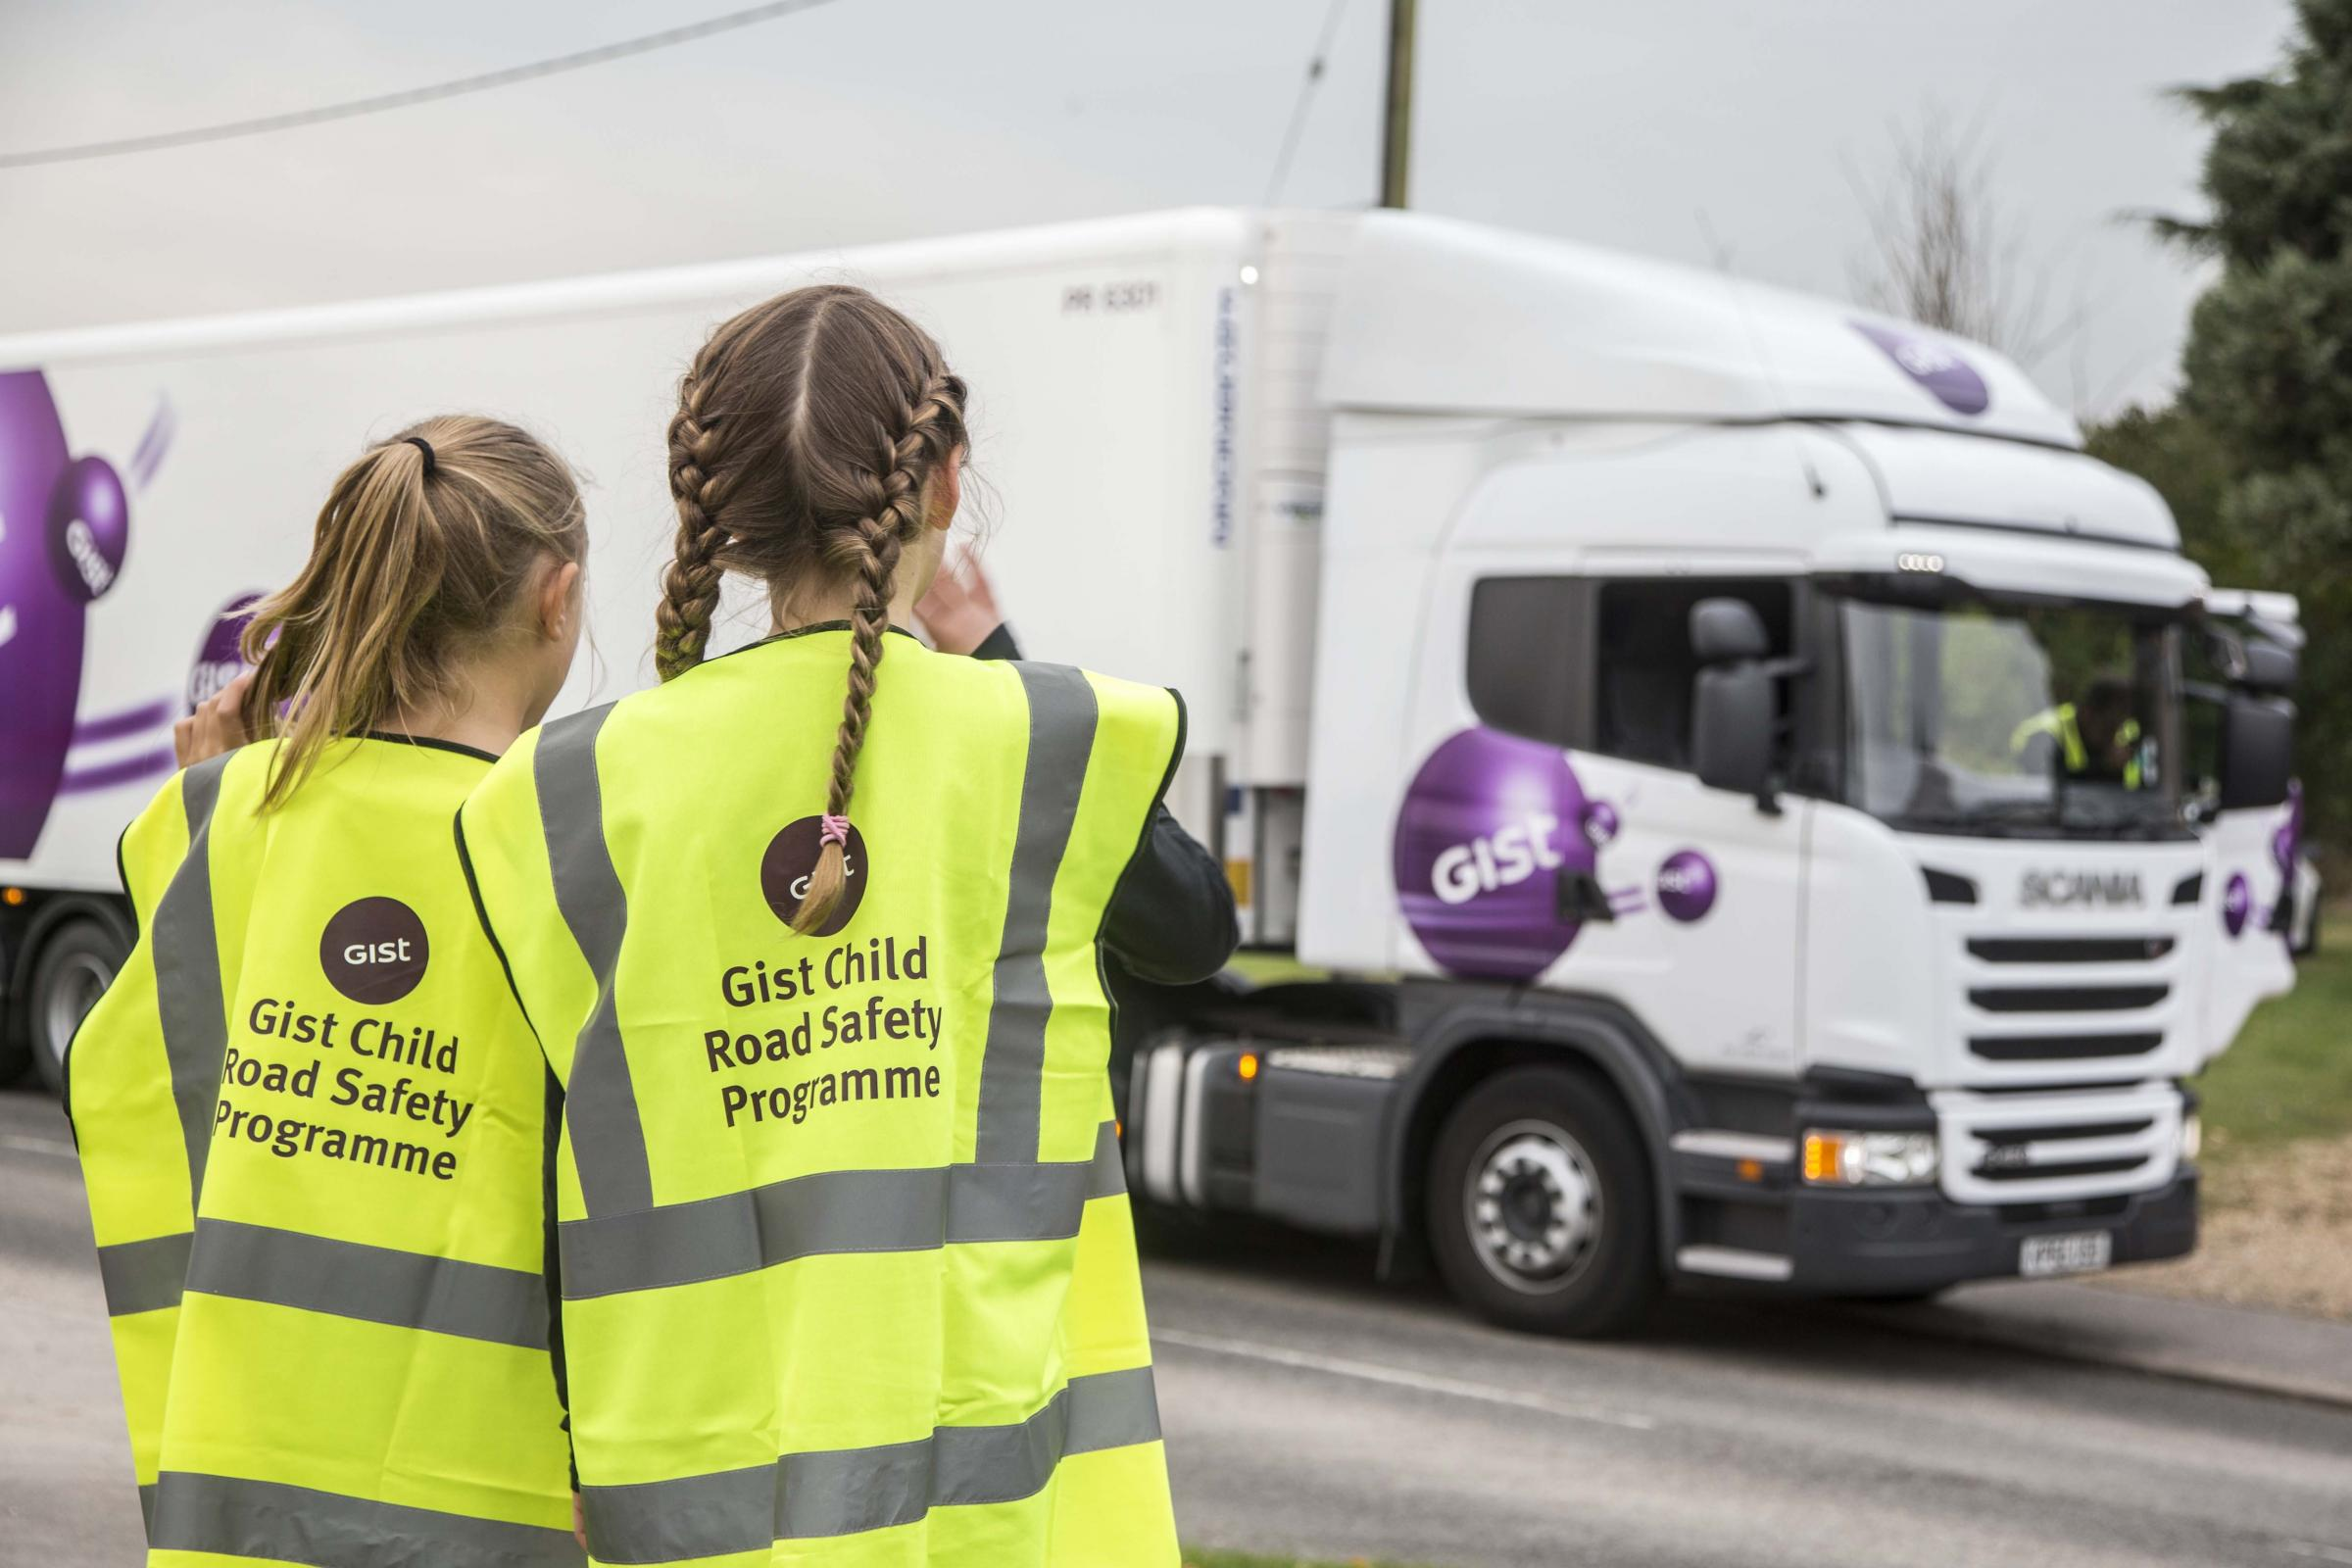 Children learn about road saftey with Gist, picture by Craig Pusey